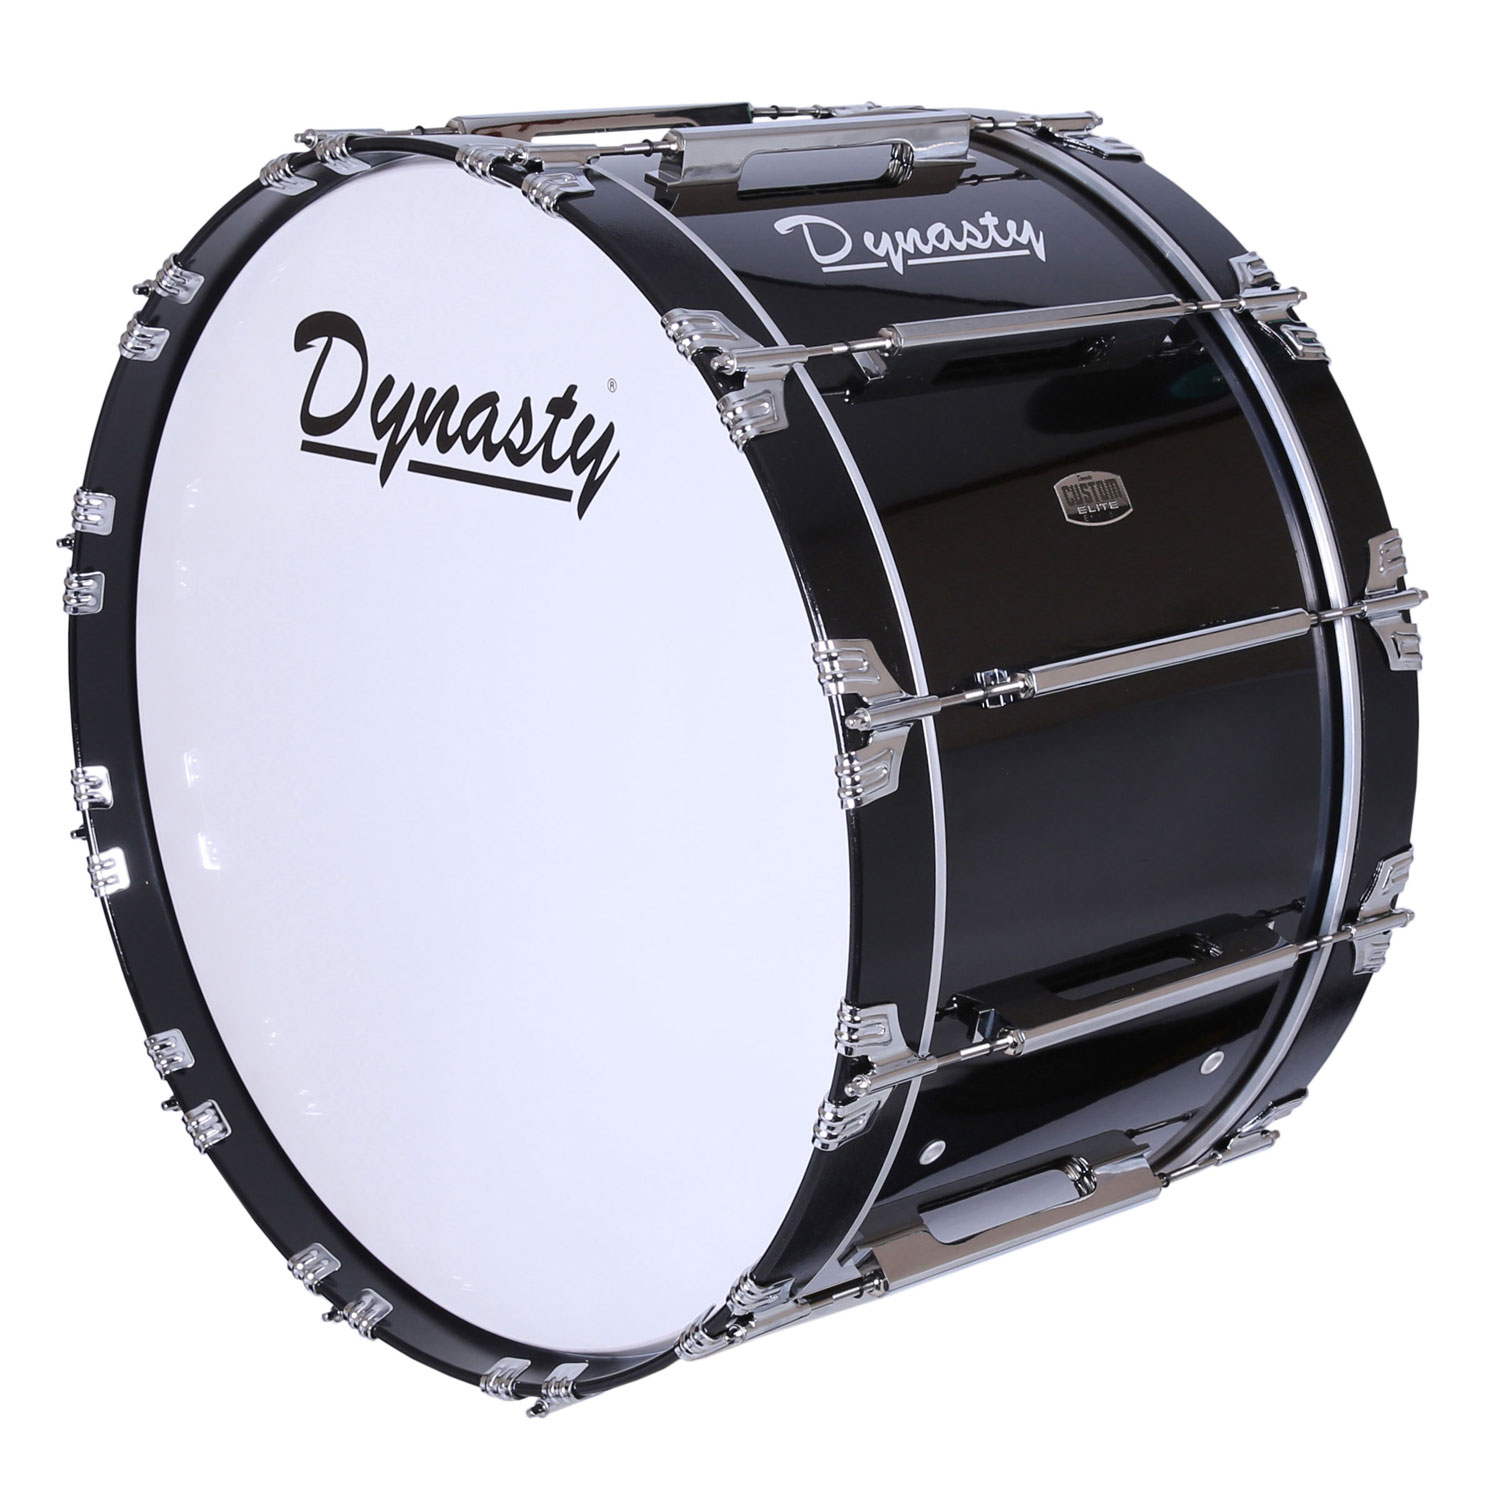 "Dynasty 14"" Custom Elite Marching Bass Drum in Black/Chrome"